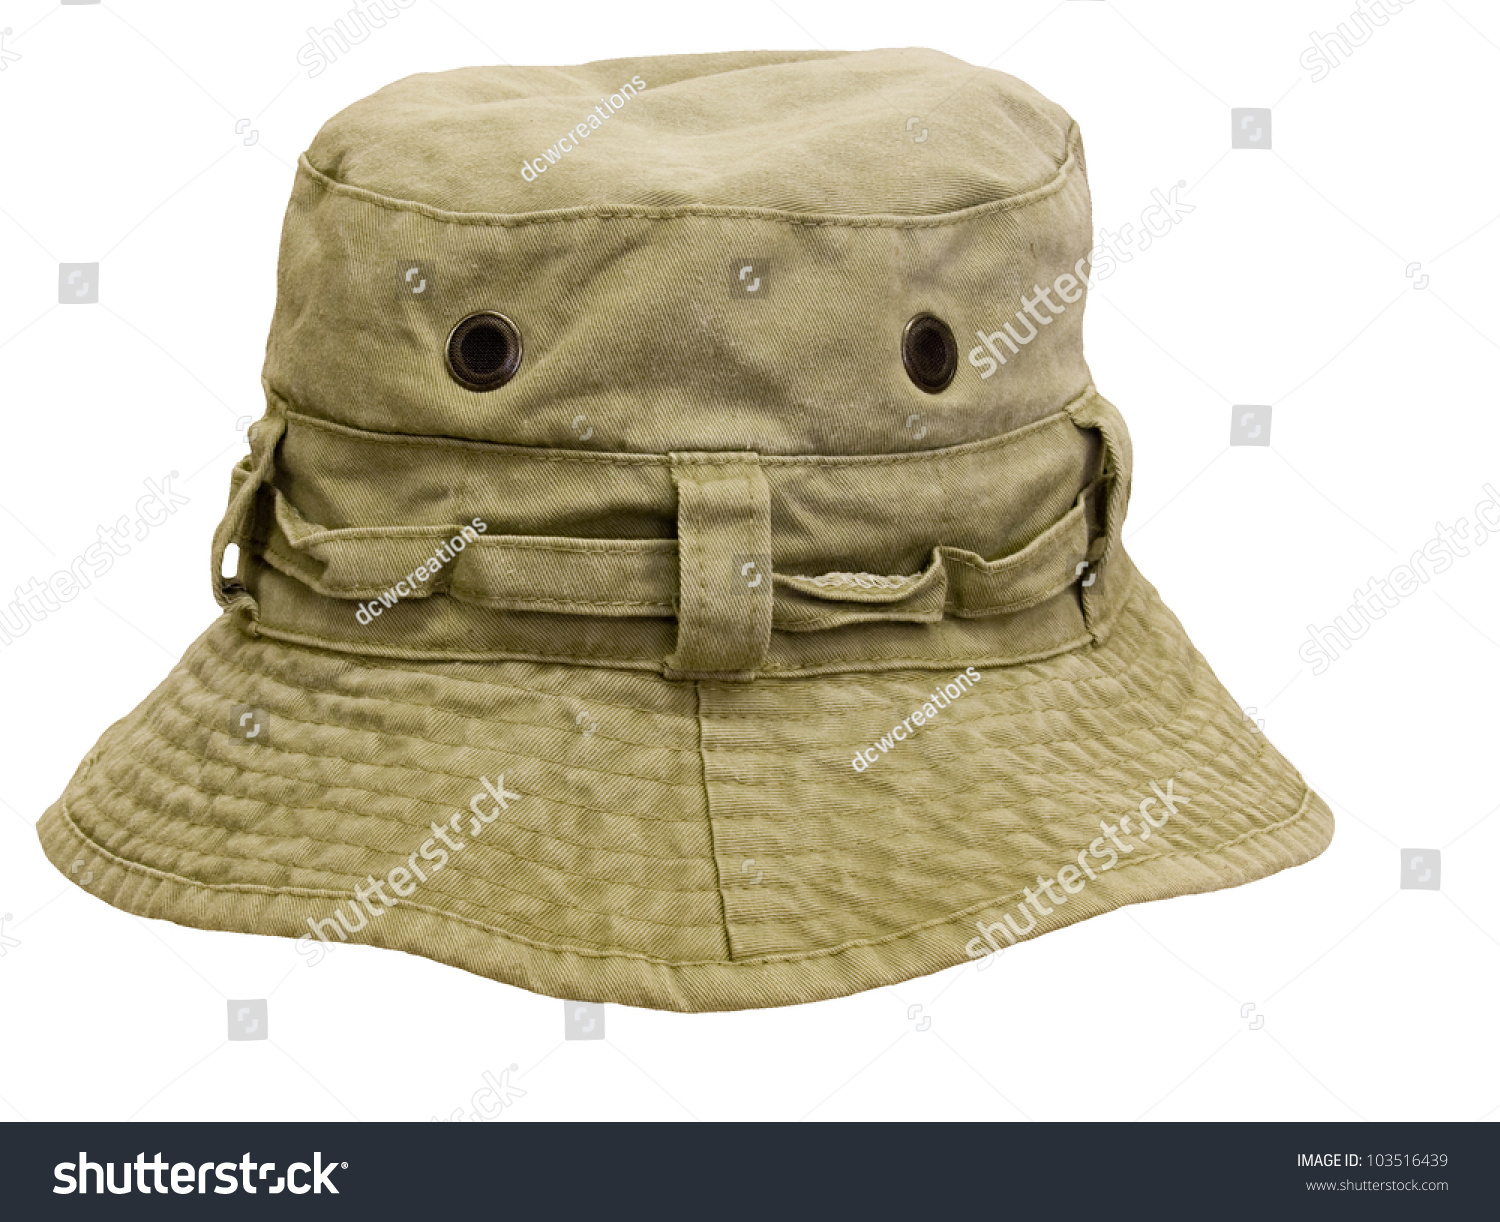 Trout fishing hat isolated over a white background stock for Trout fishing hat